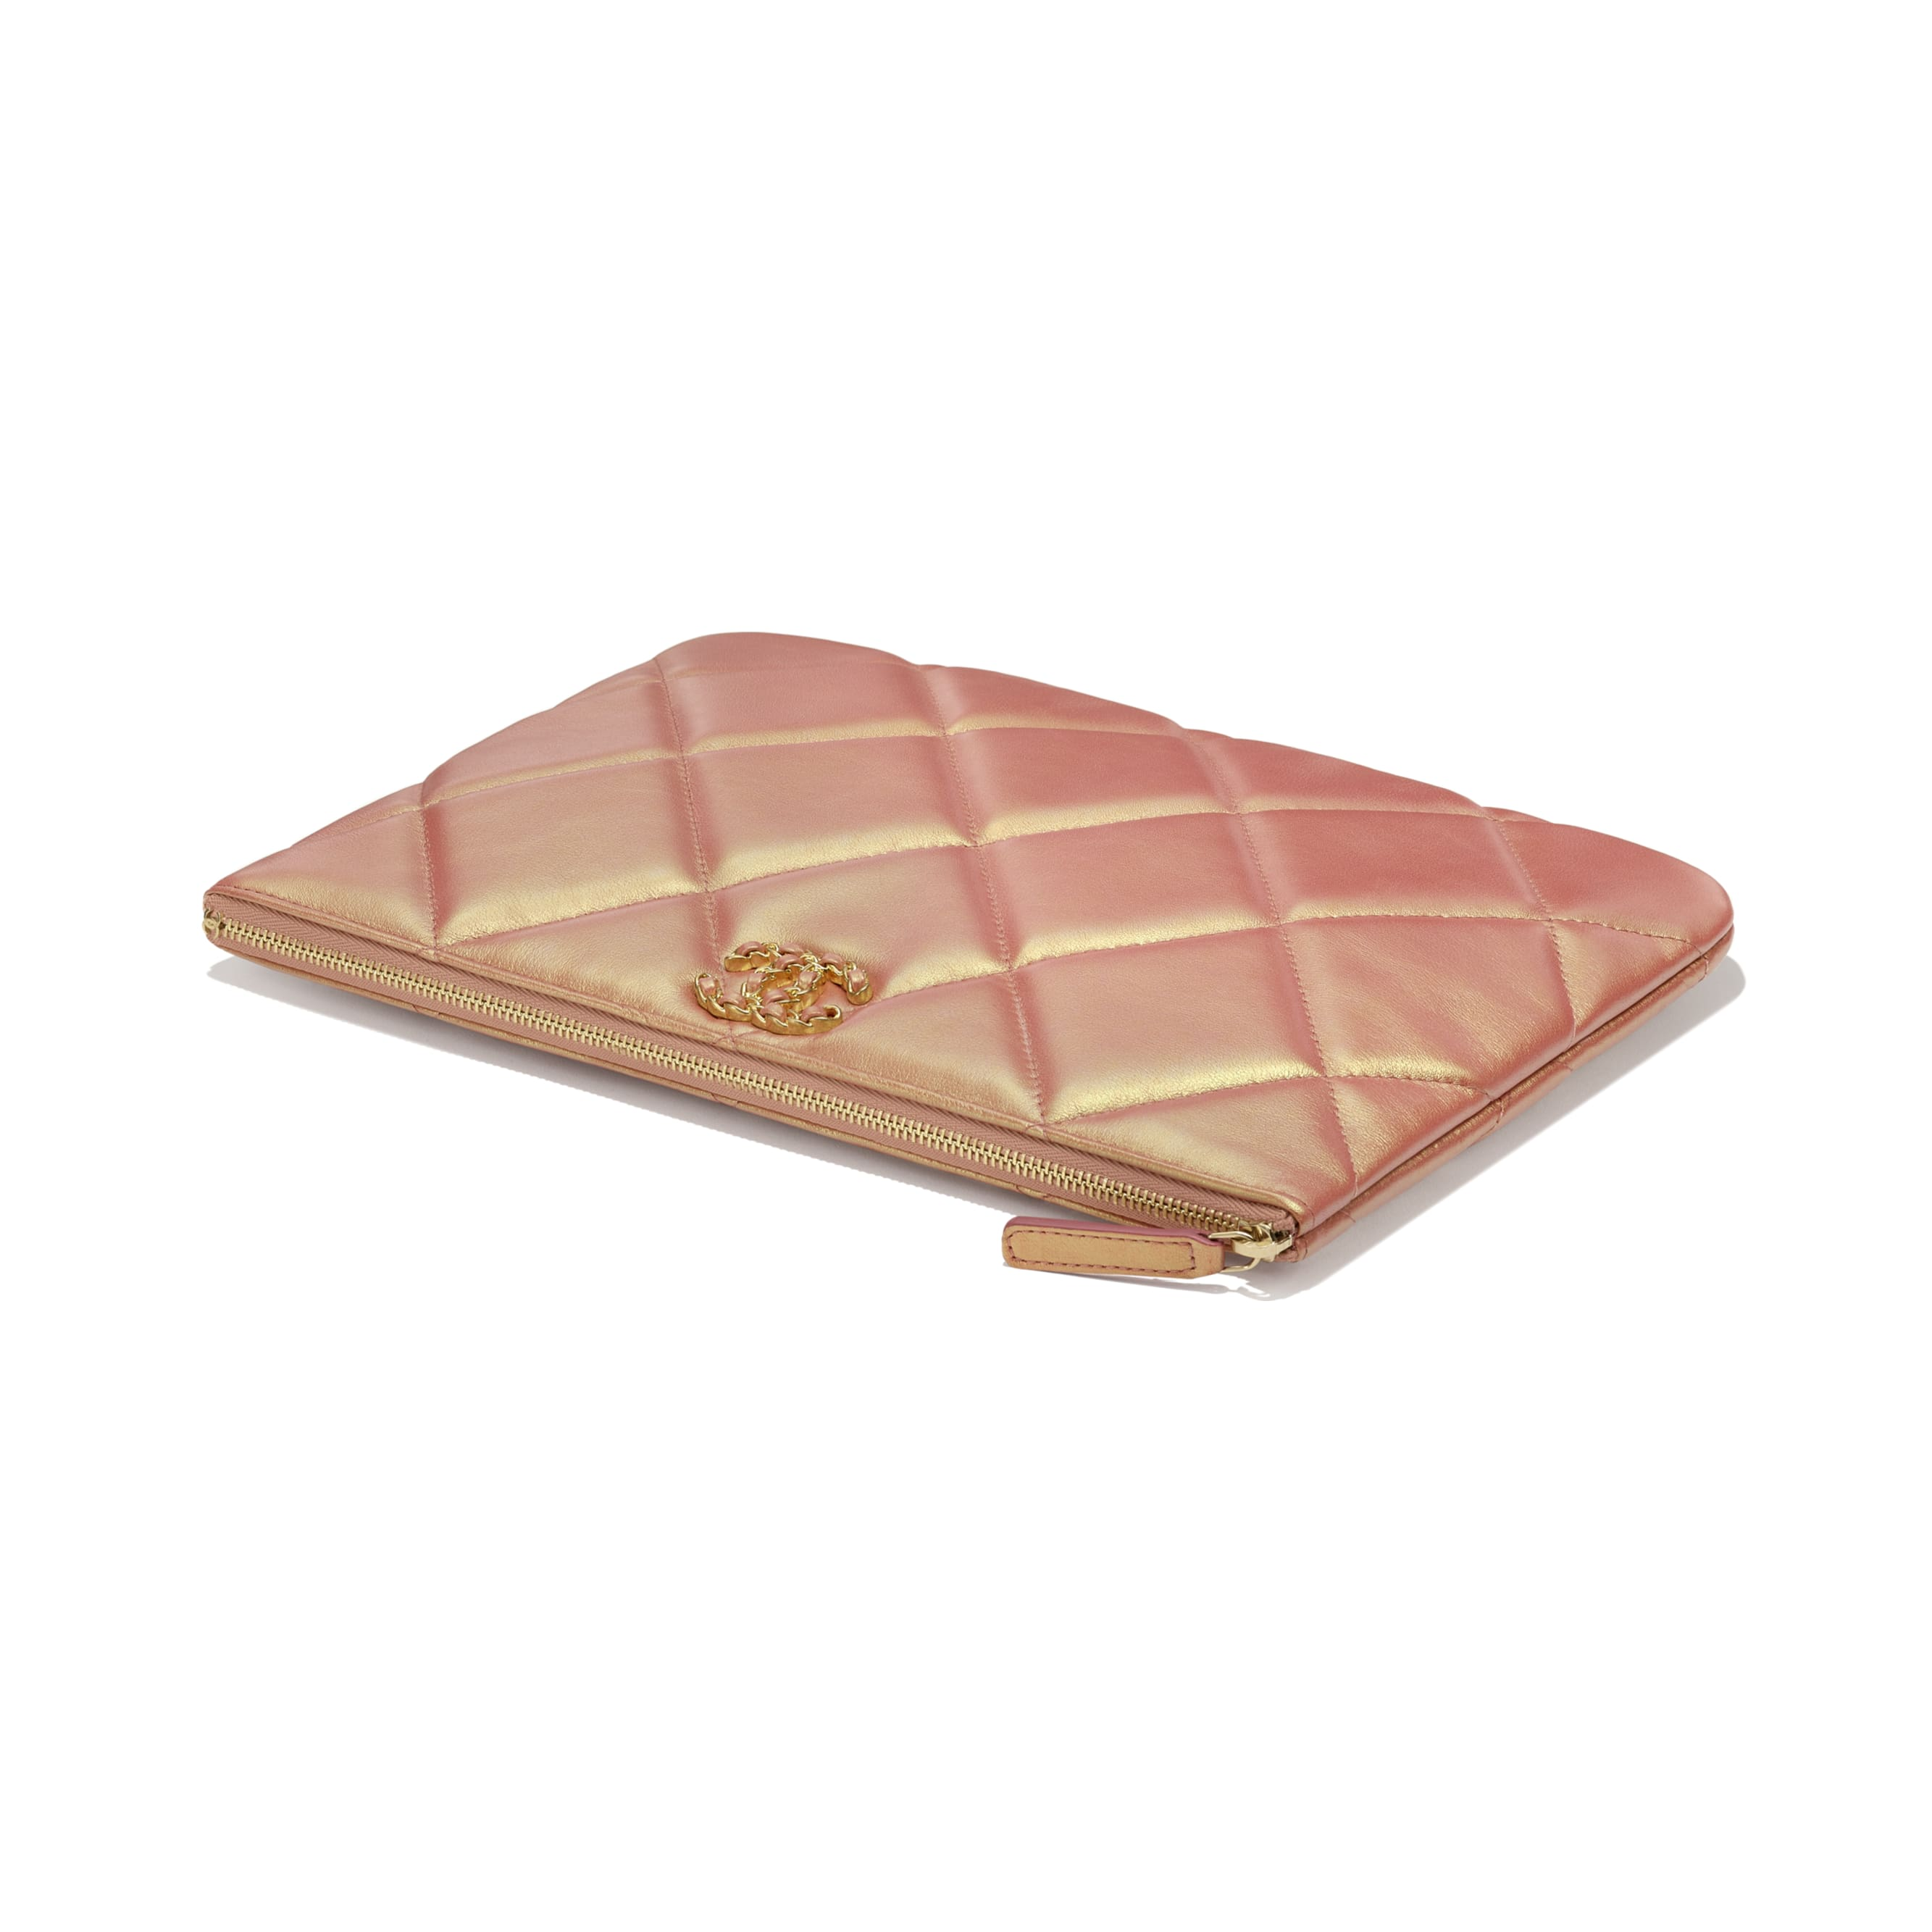 CHANEL 19 Pouch - Pink - Iridescent Calfskin, Gold-Tone, Silver-Tone & Ruthenium-Finish Metal - CHANEL - Extra view - see standard sized version